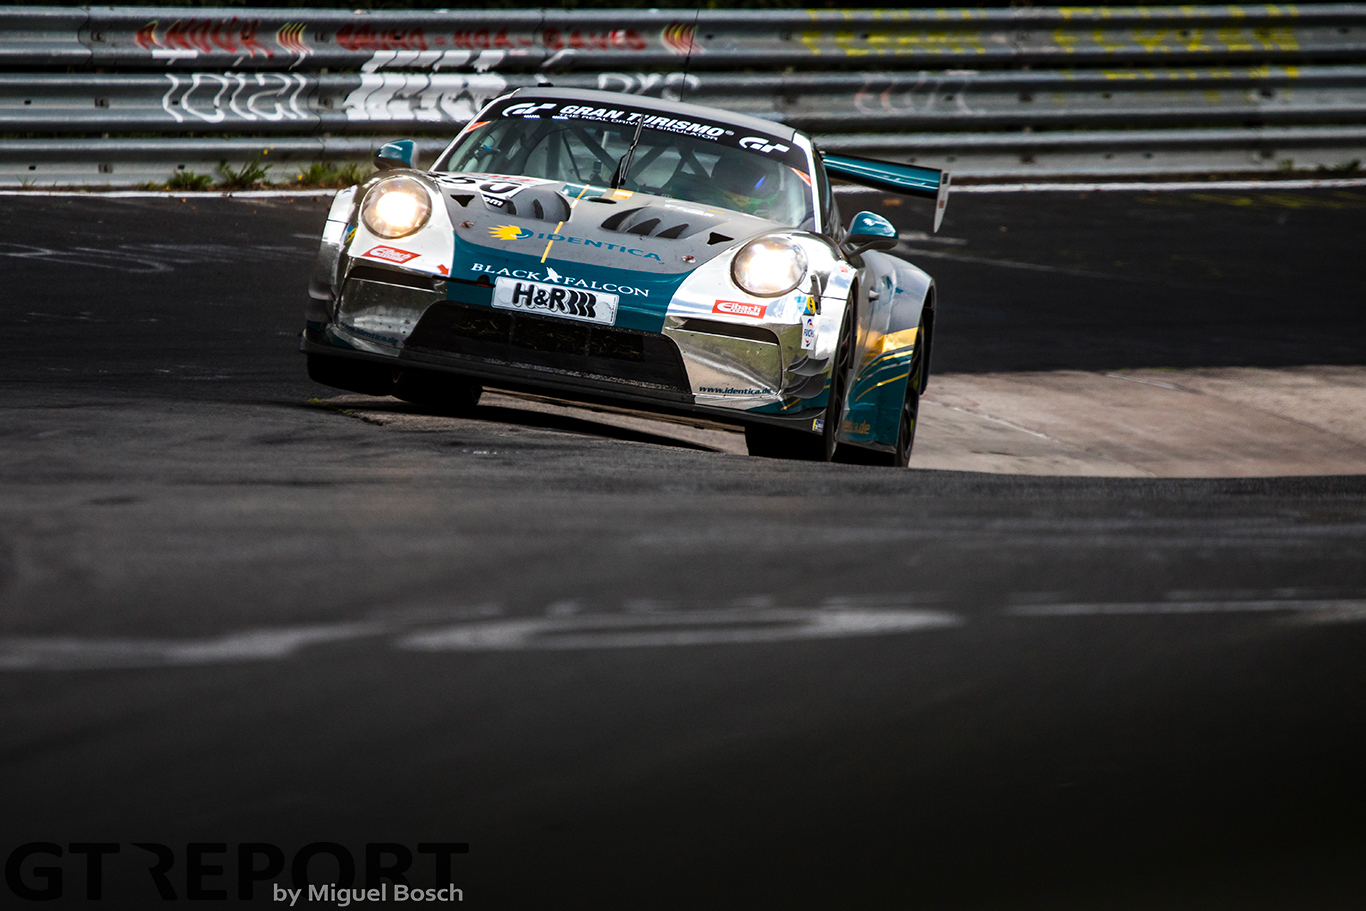 """Tobias Müller: """"Racing the Porsche Cup MR gave me the confidence to step into GT3 and perform"""""""